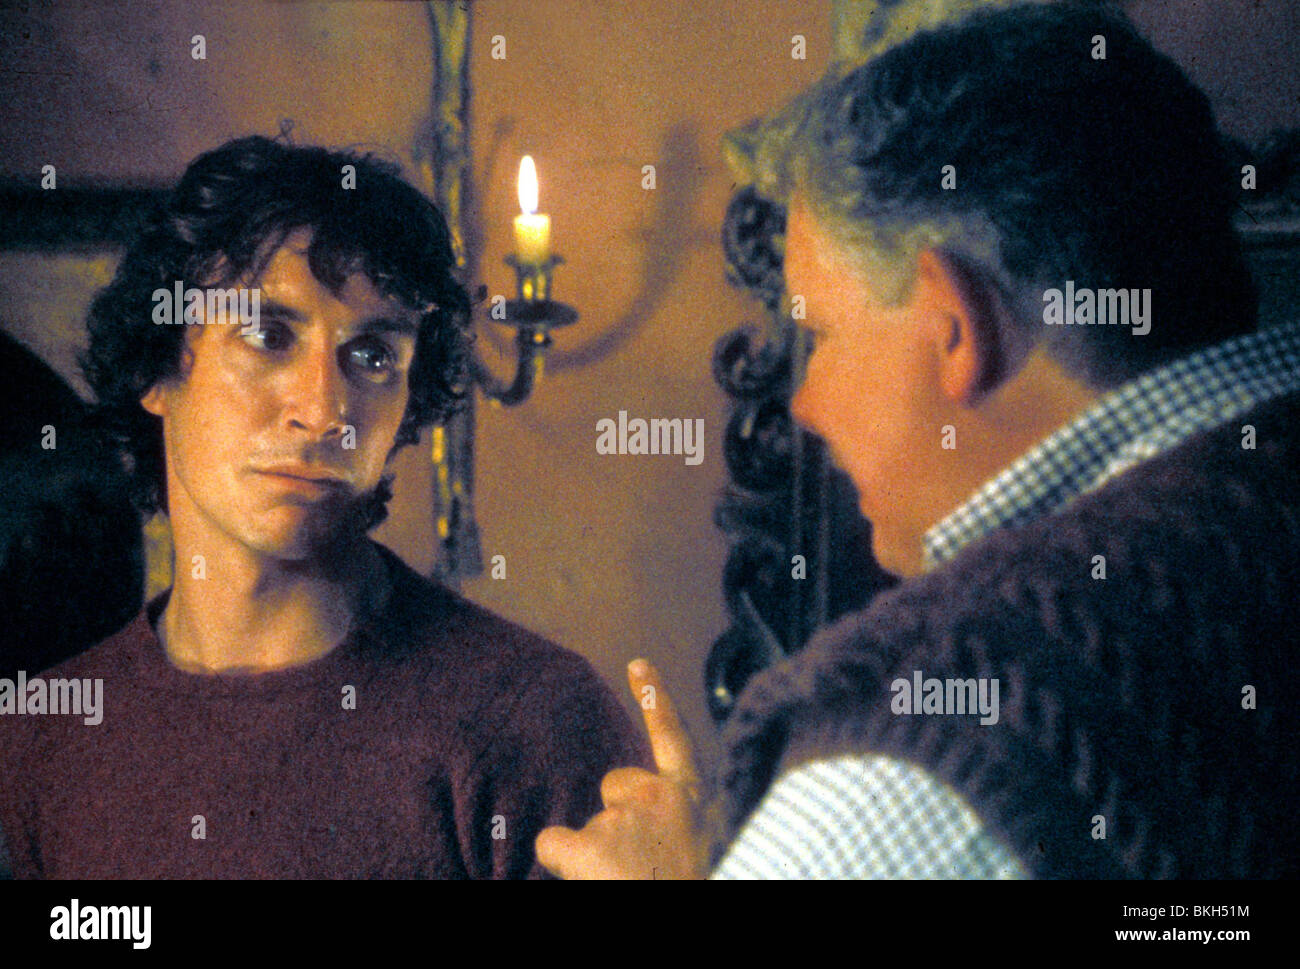 withnail and i full movie with subtitles